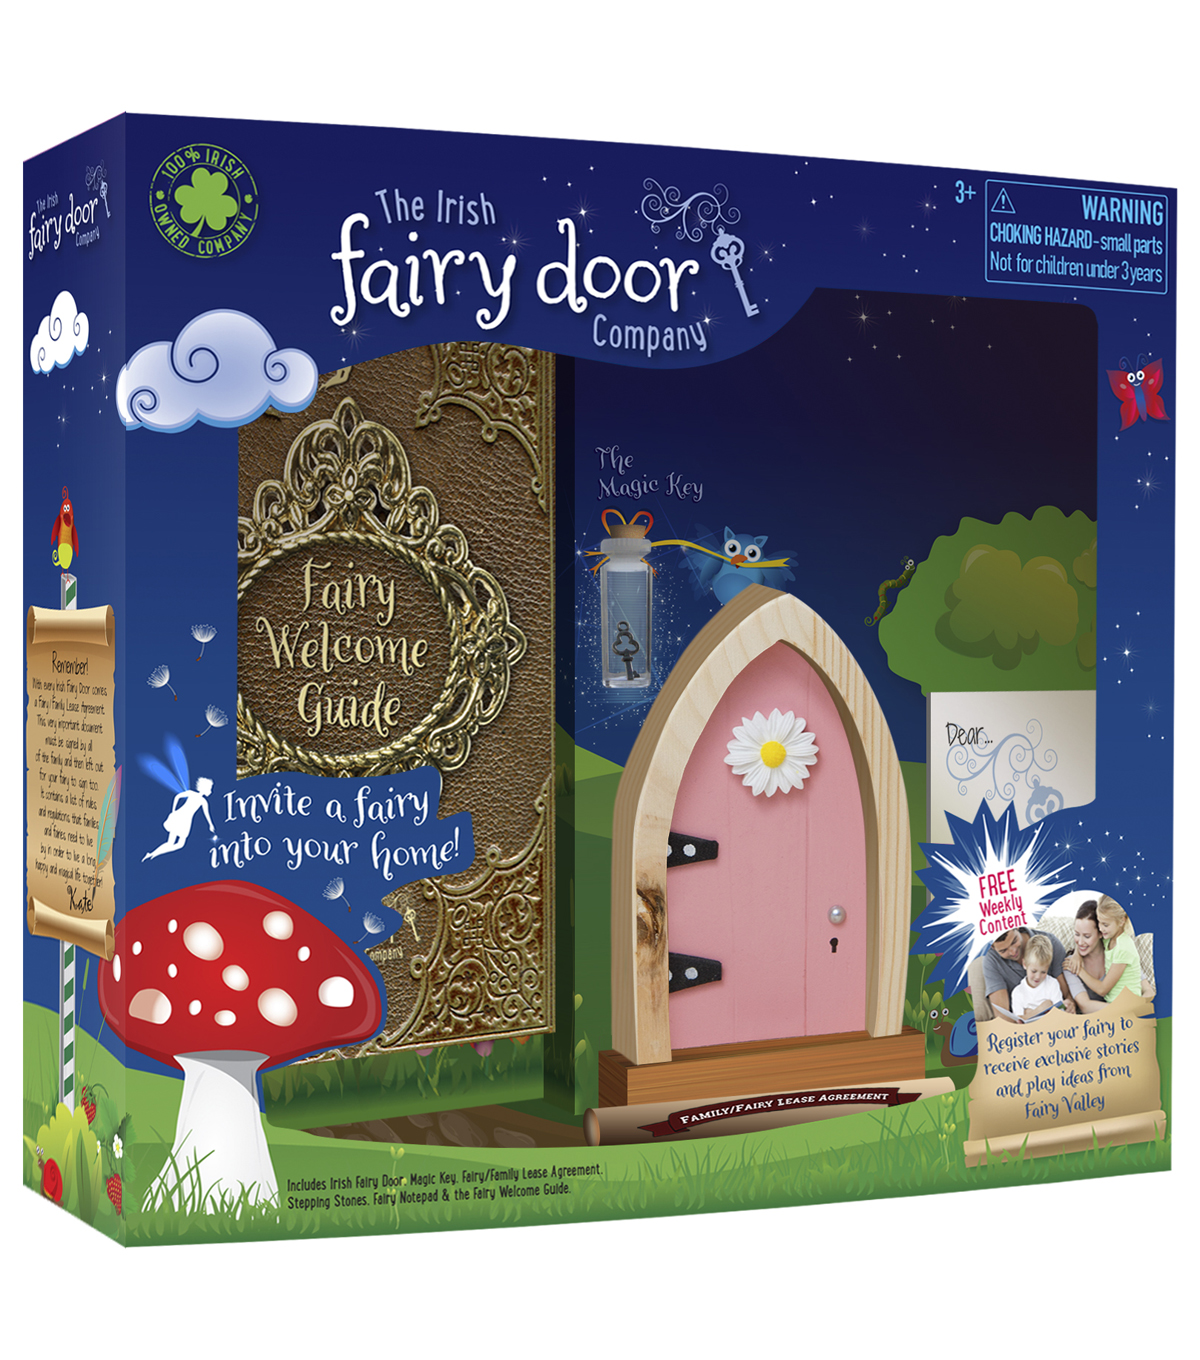 The Irish Fairydoor Company Fairy Door  sc 1 st  Joann & The Irish Fairydoor Company Fairy Door | JOANN pezcame.com